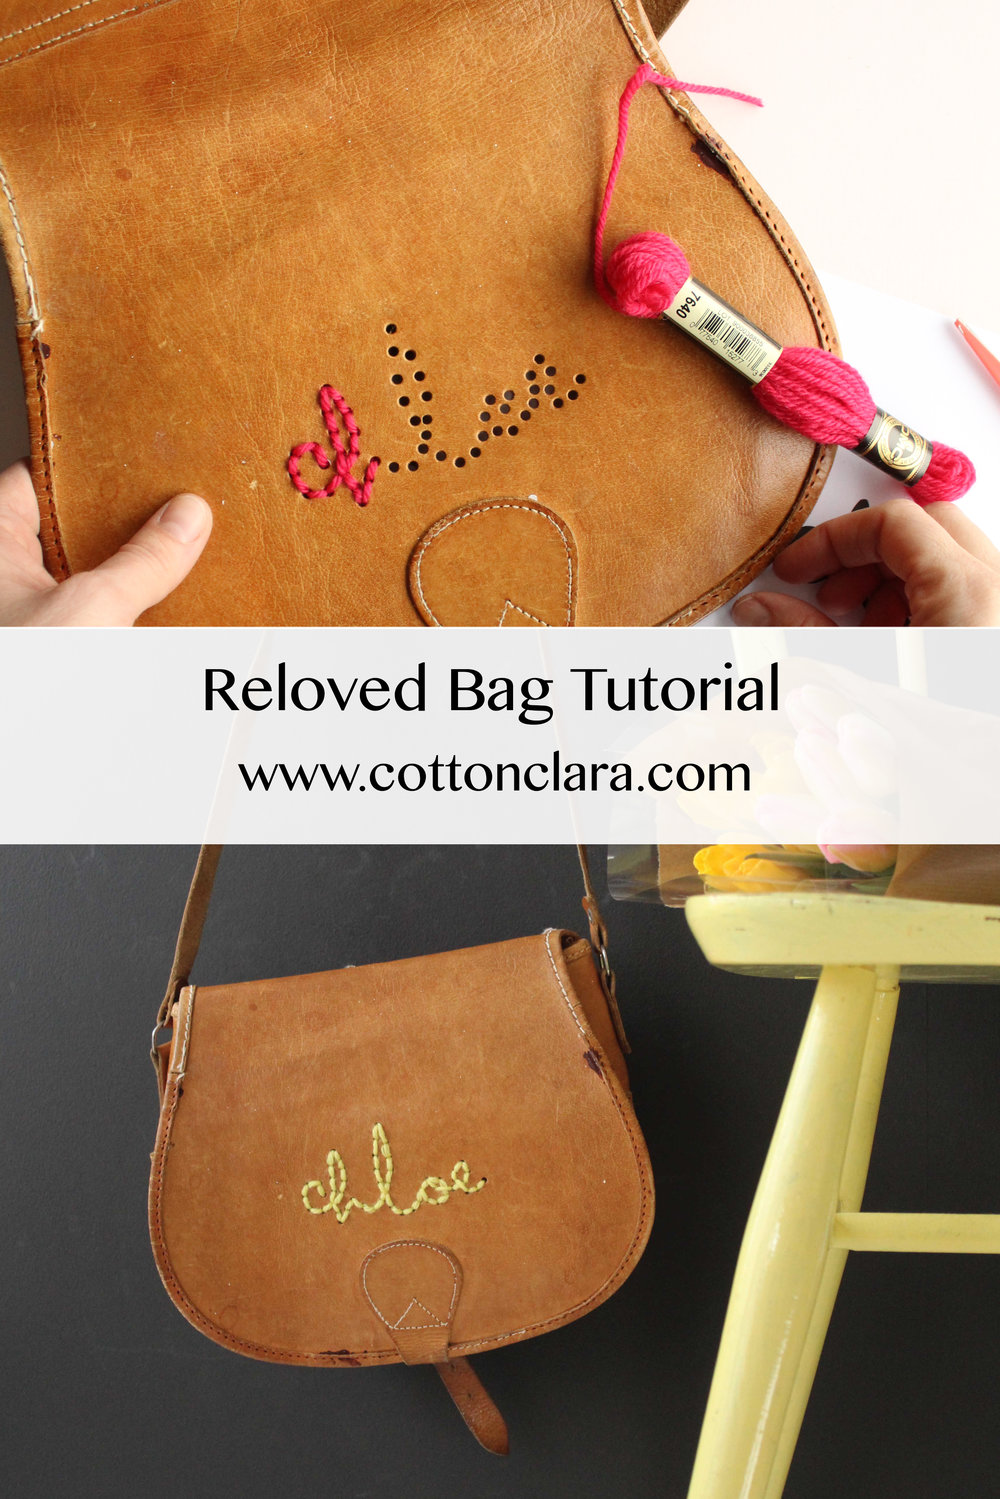 Reloved Bag Project by Cotton Clara